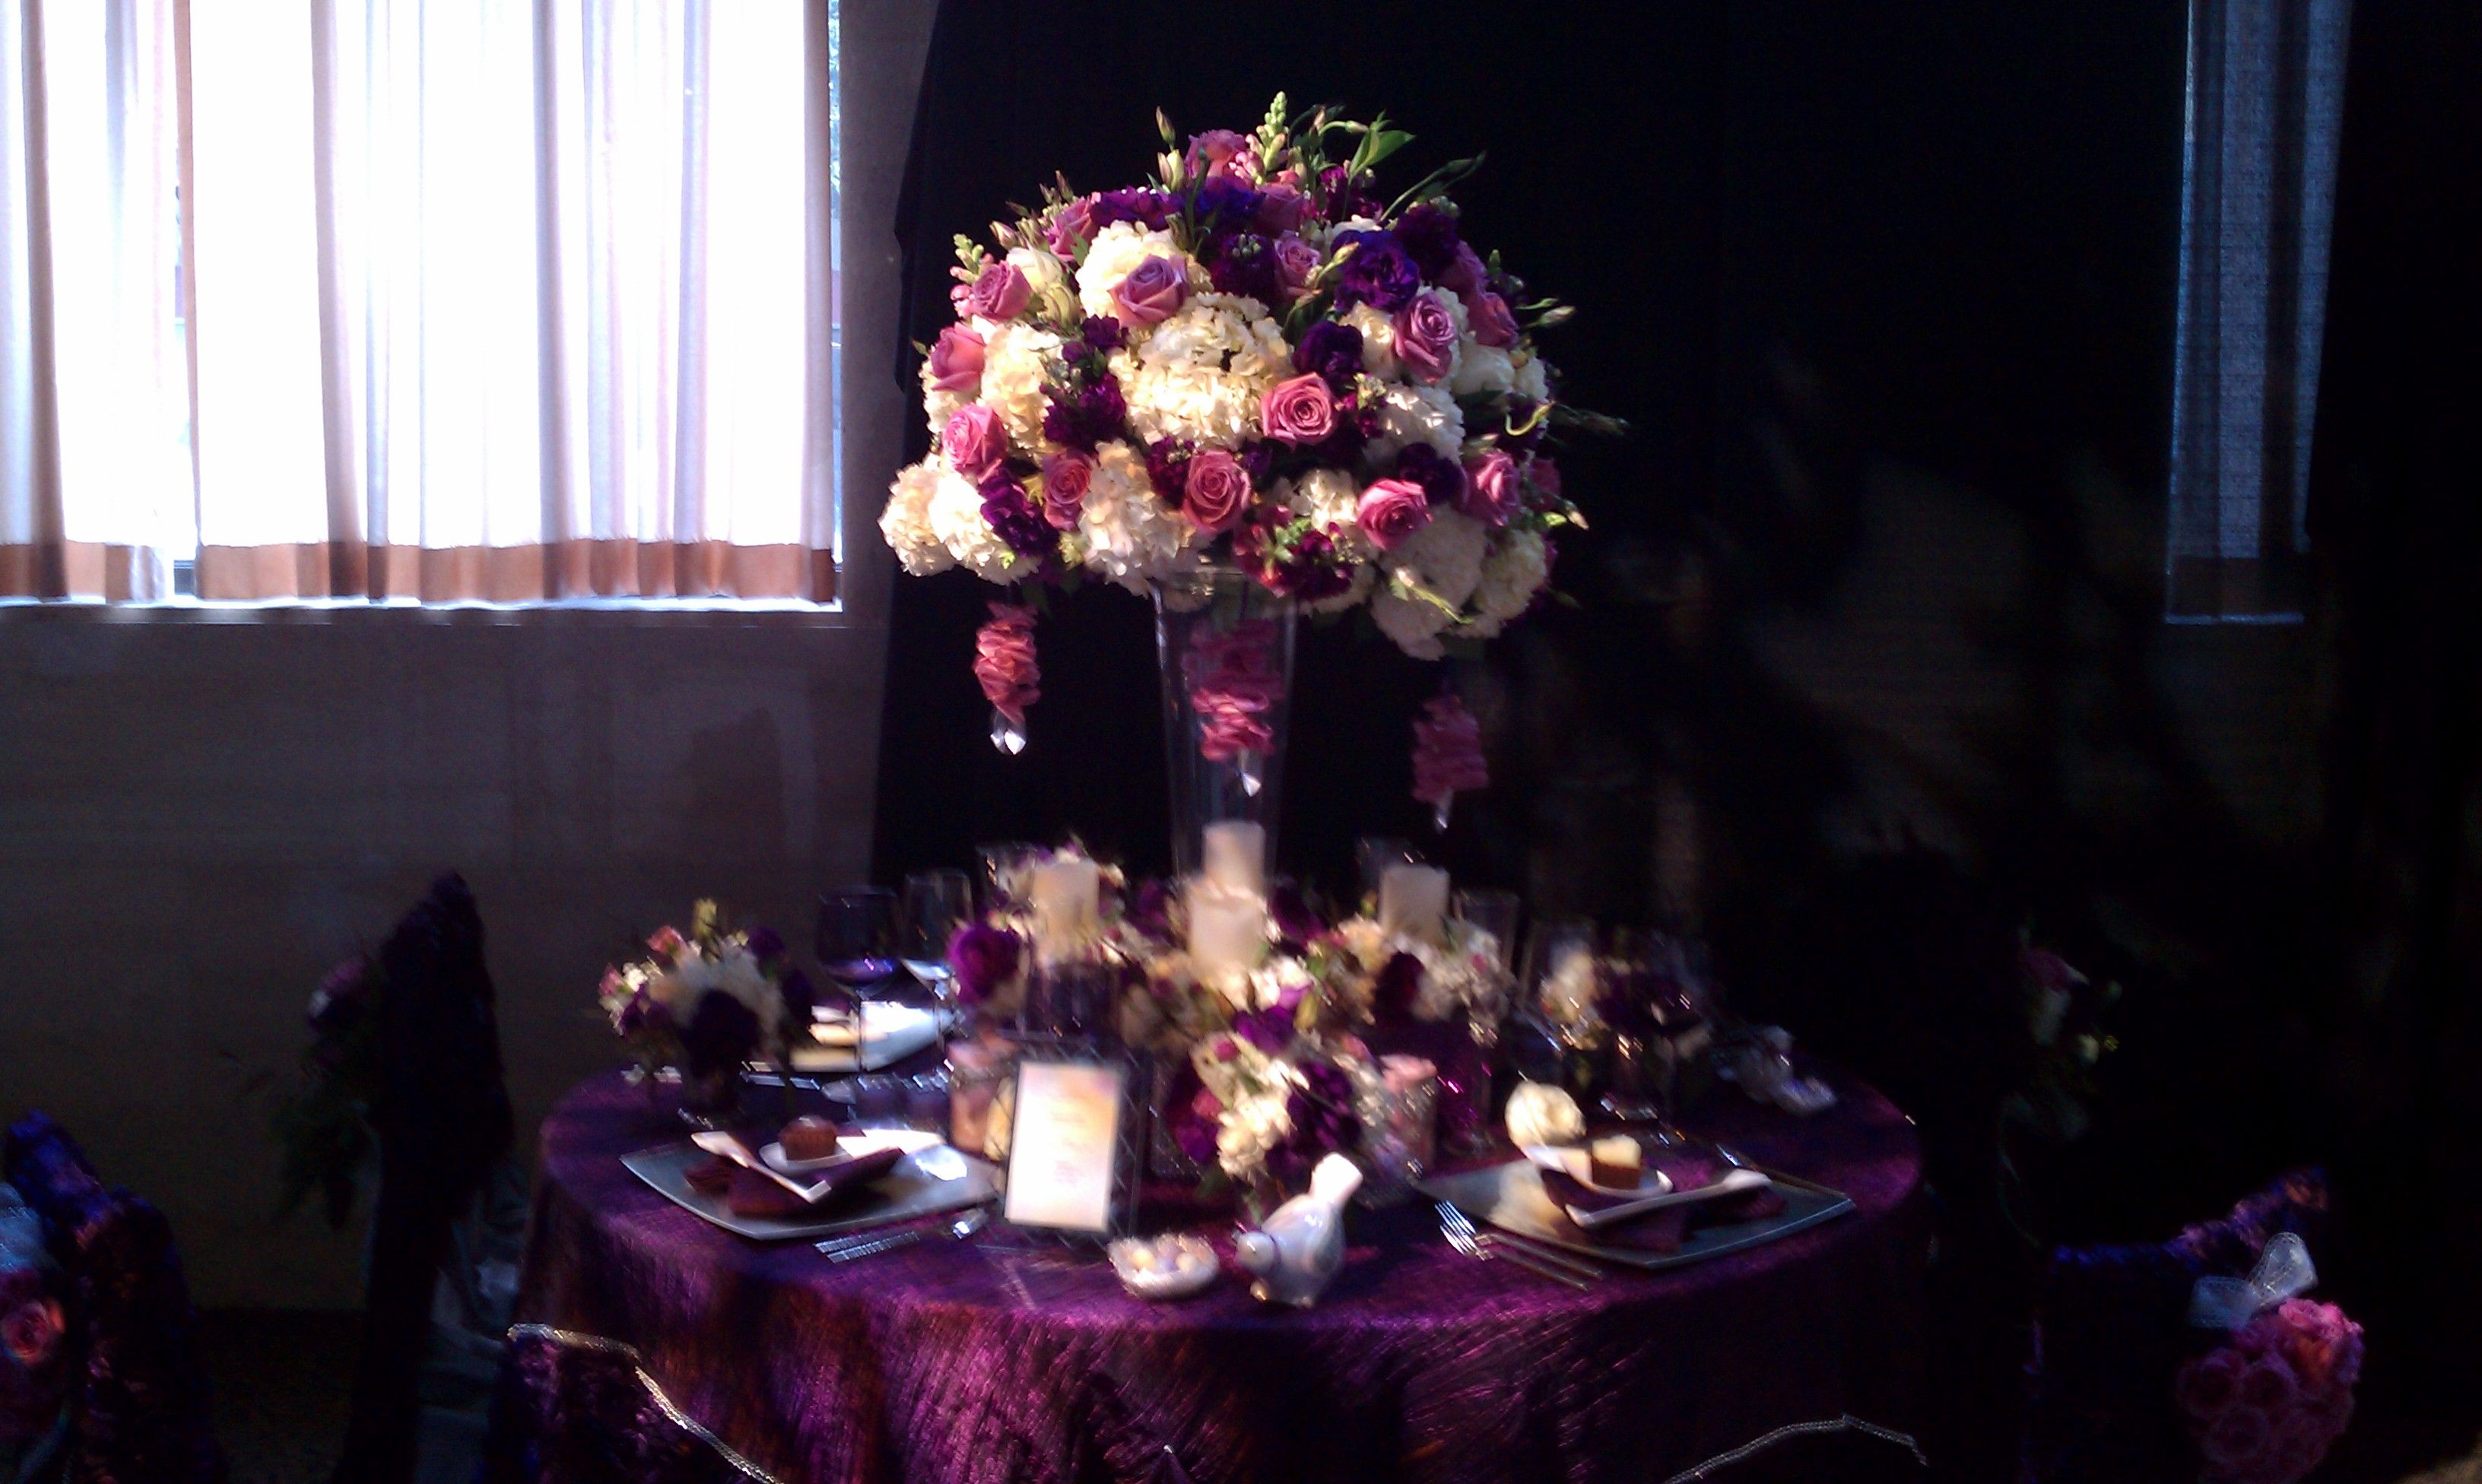 Wedding flower centerpiece in shades of purple and white. Look closely for all the layers of details...this is what will enchant and entertain your guests while sitting at a table like this...there are many layers and surprises for guests to discover, taking their breath away with wonder and fascination.  I used white hydrangea, lavender roses, purple lisianthus, purple stock and lavender snap draggons.